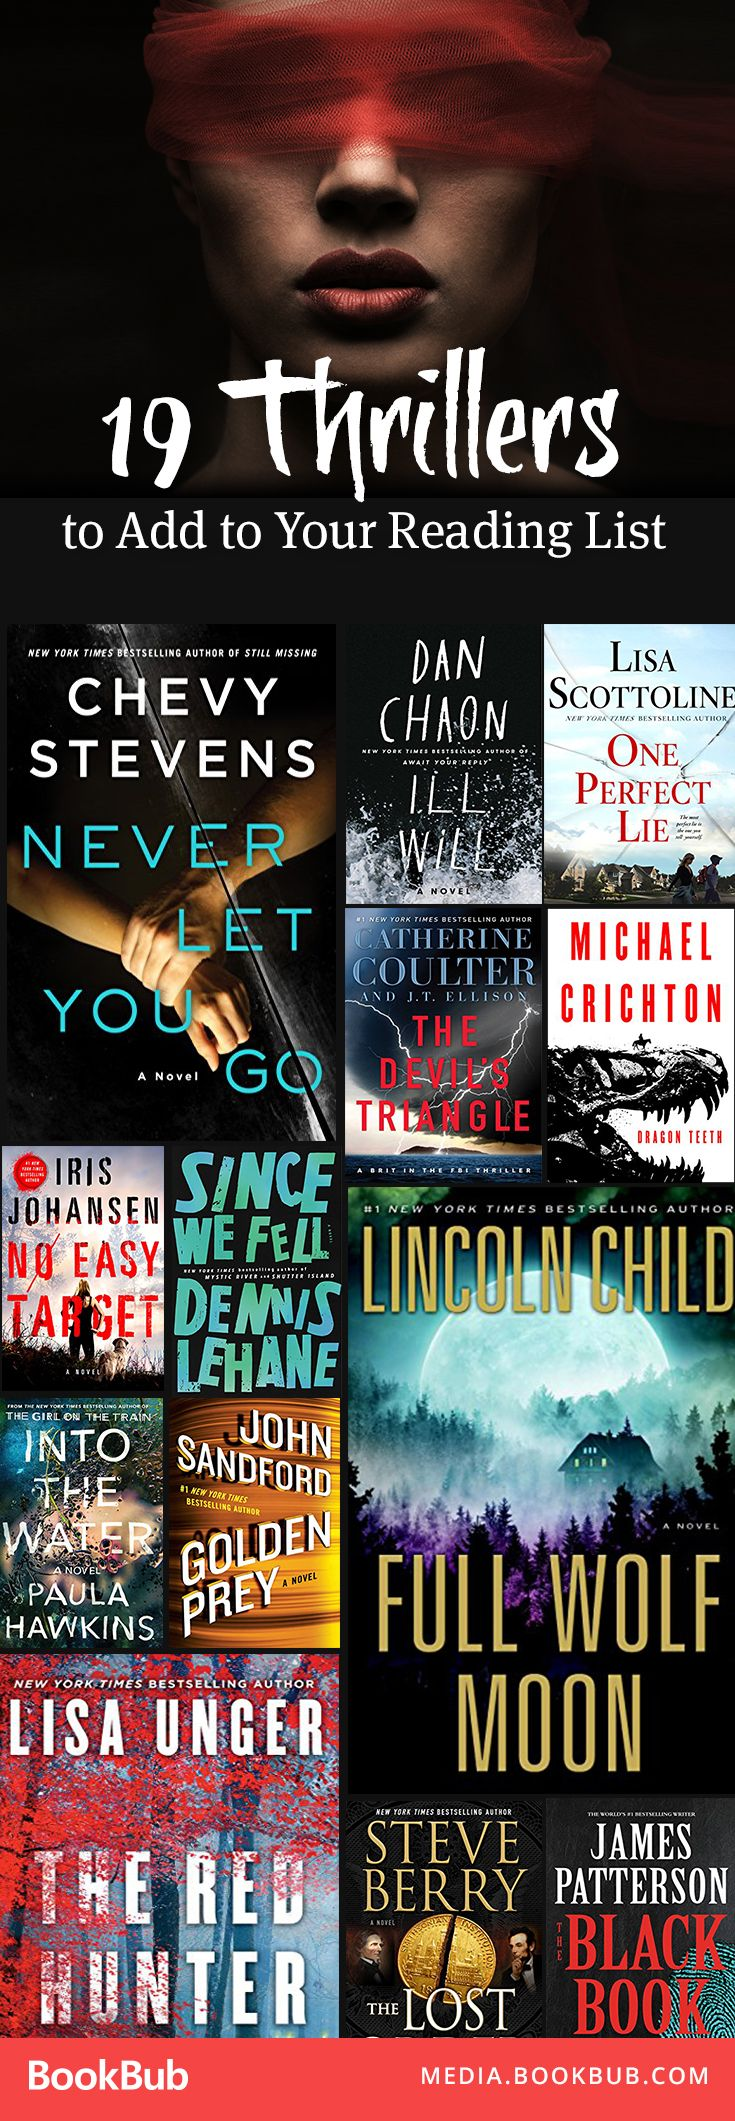 19 thriller books to add to your reading list in 2017. Including new releases from bestsellers like Michael Crichton, Paula Hawkins, James Patterson, and more.